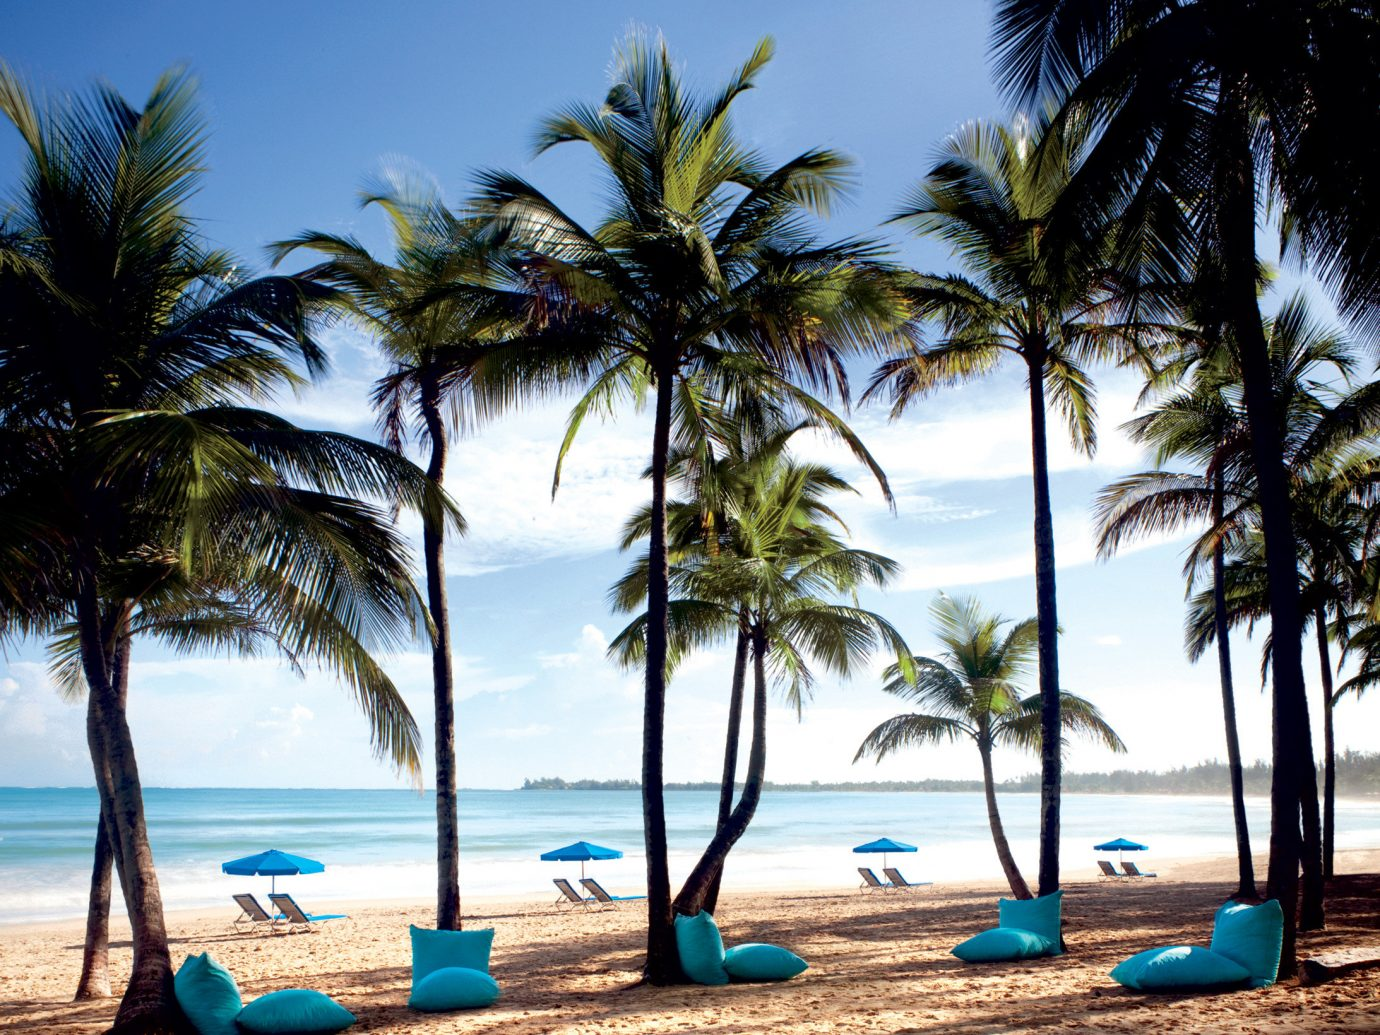 Beach Beachfront Jetsetter Guides Luxury Ocean Play Resort tree outdoor palm water sky body of water Sea caribbean shore palm family vacation tropics plant Coast lined arecales woody plant bay sandy Island Lagoon shade sand line